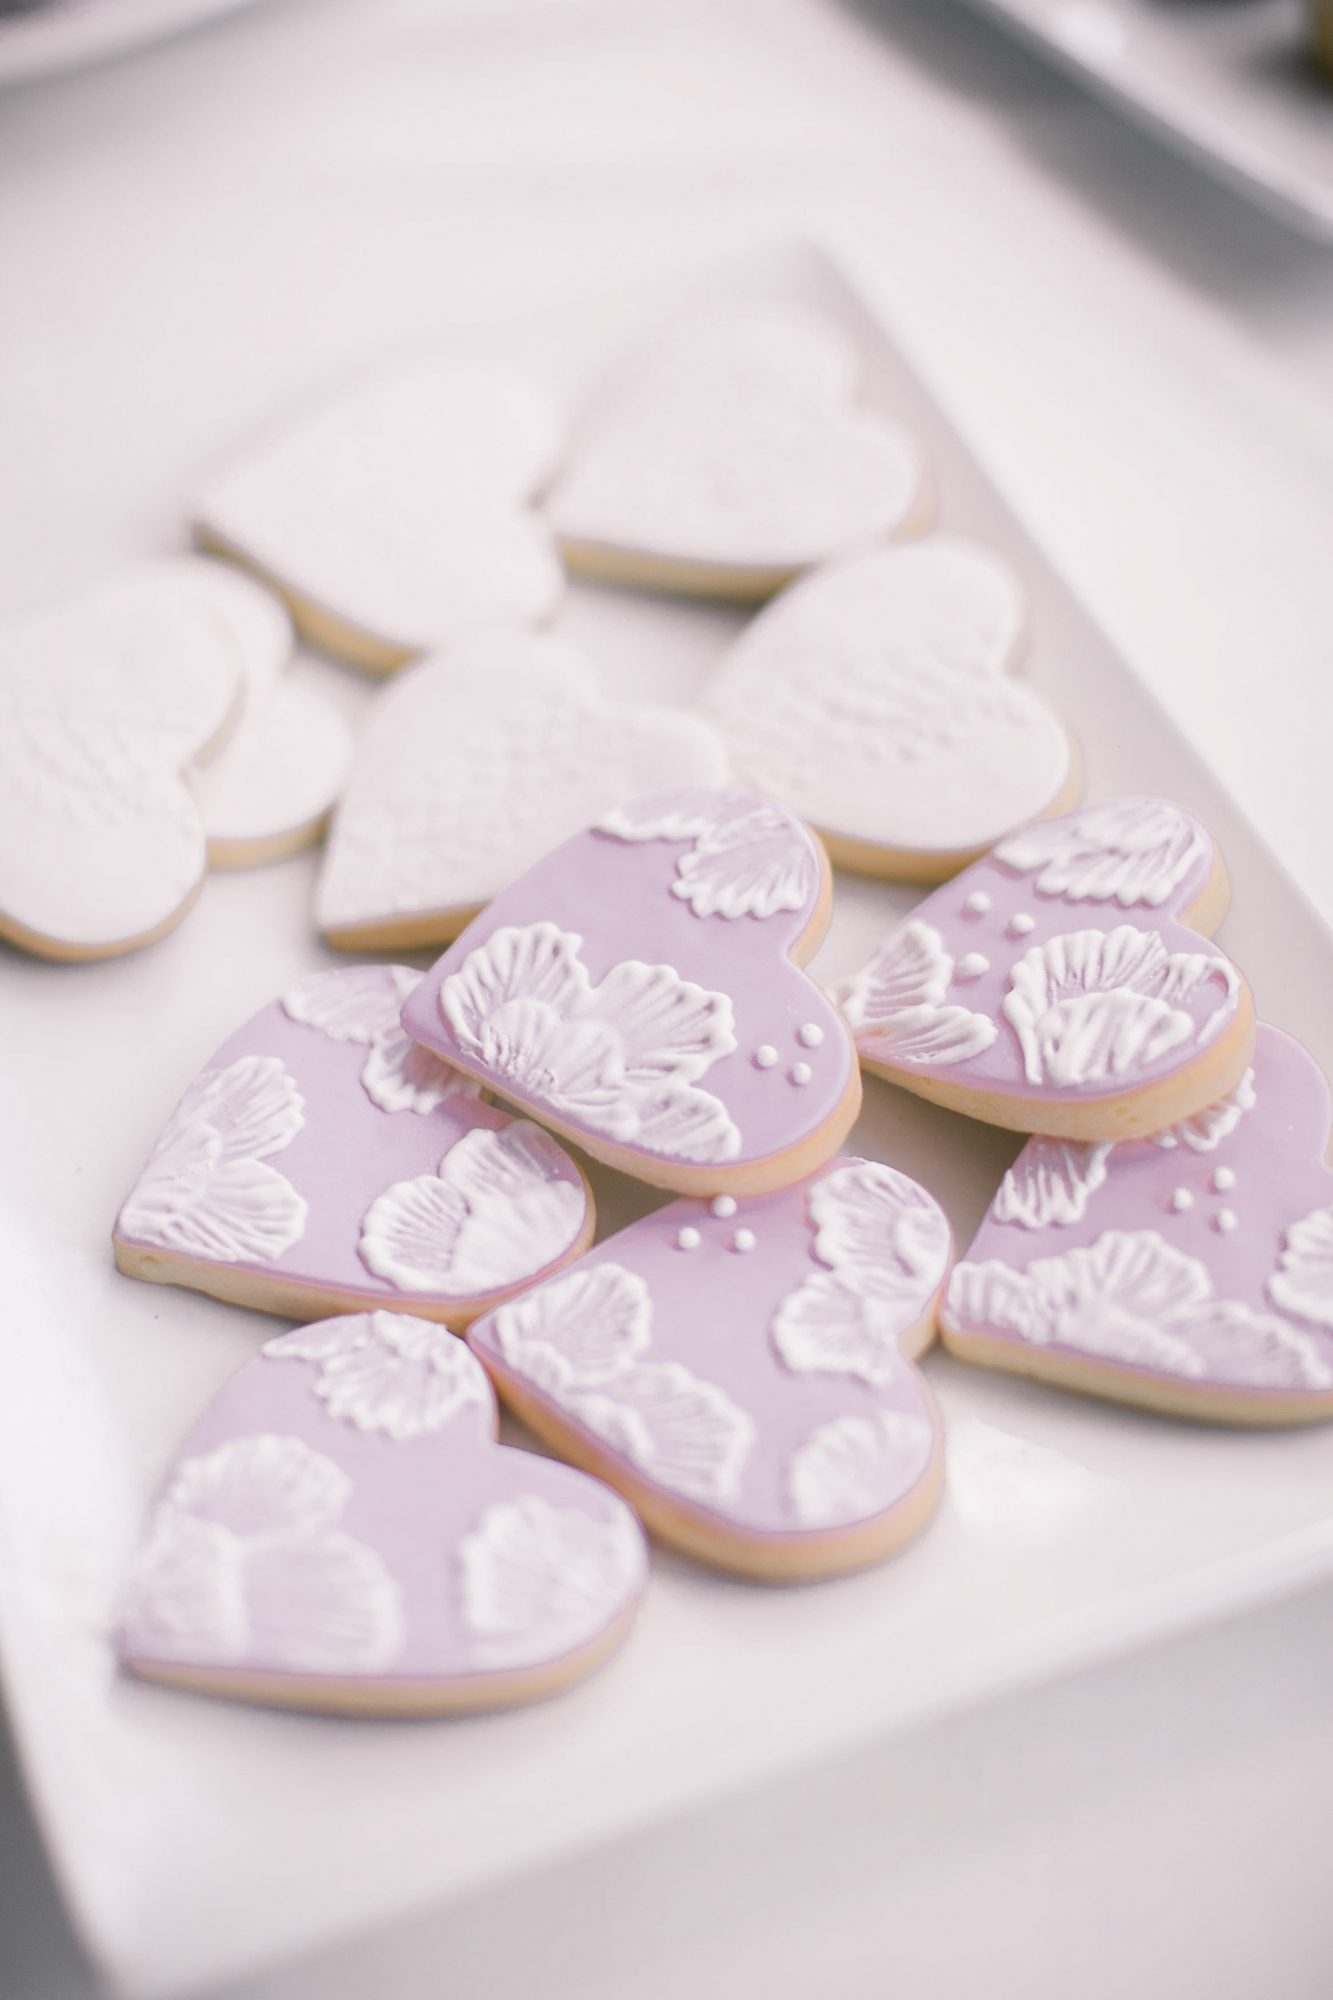 lilac and white floral frosted heart shaped cookies